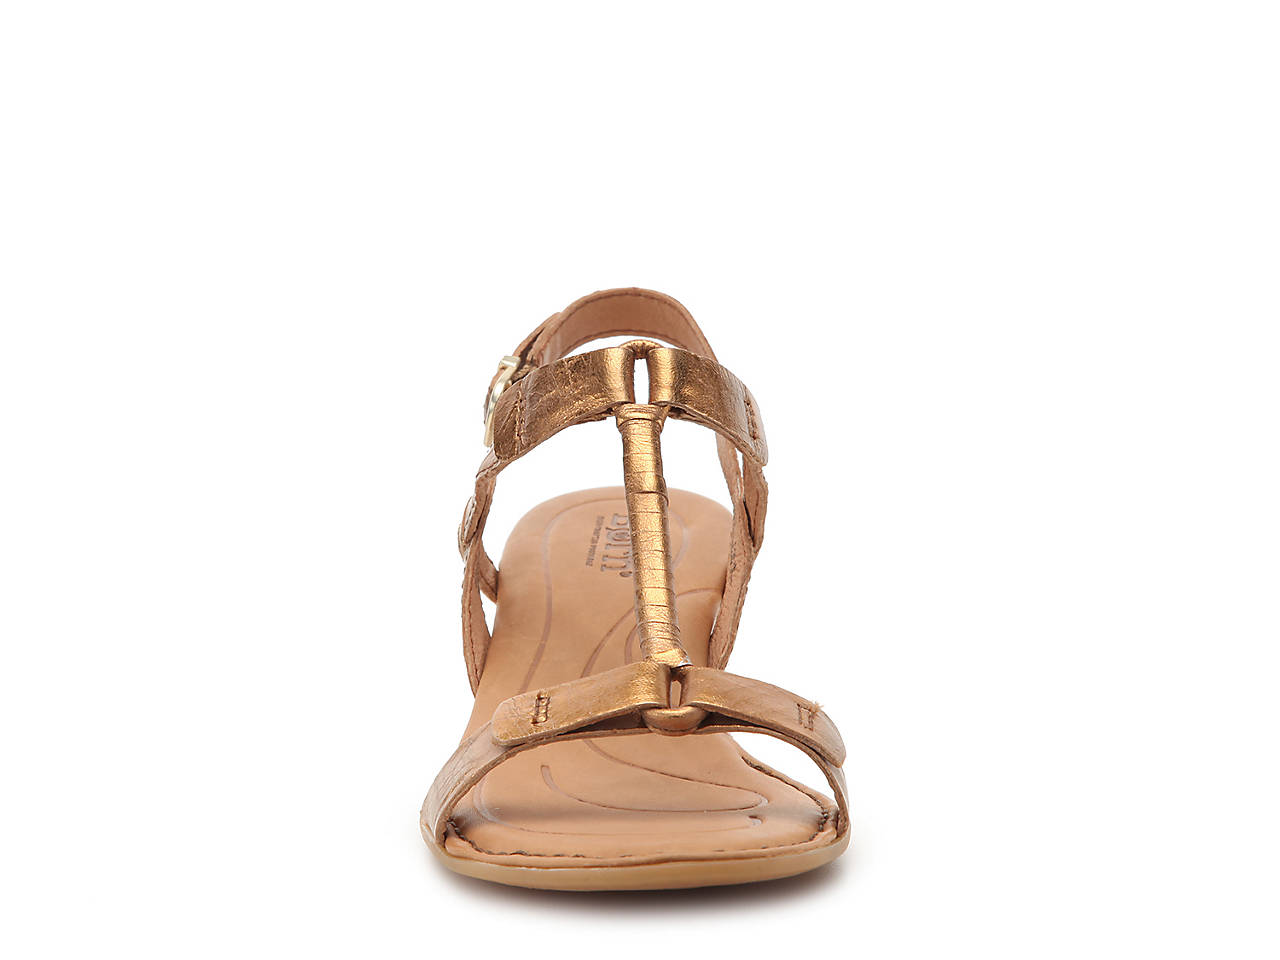 f21a0d294a73 Born Douala Wedge Sandal Women s Shoes